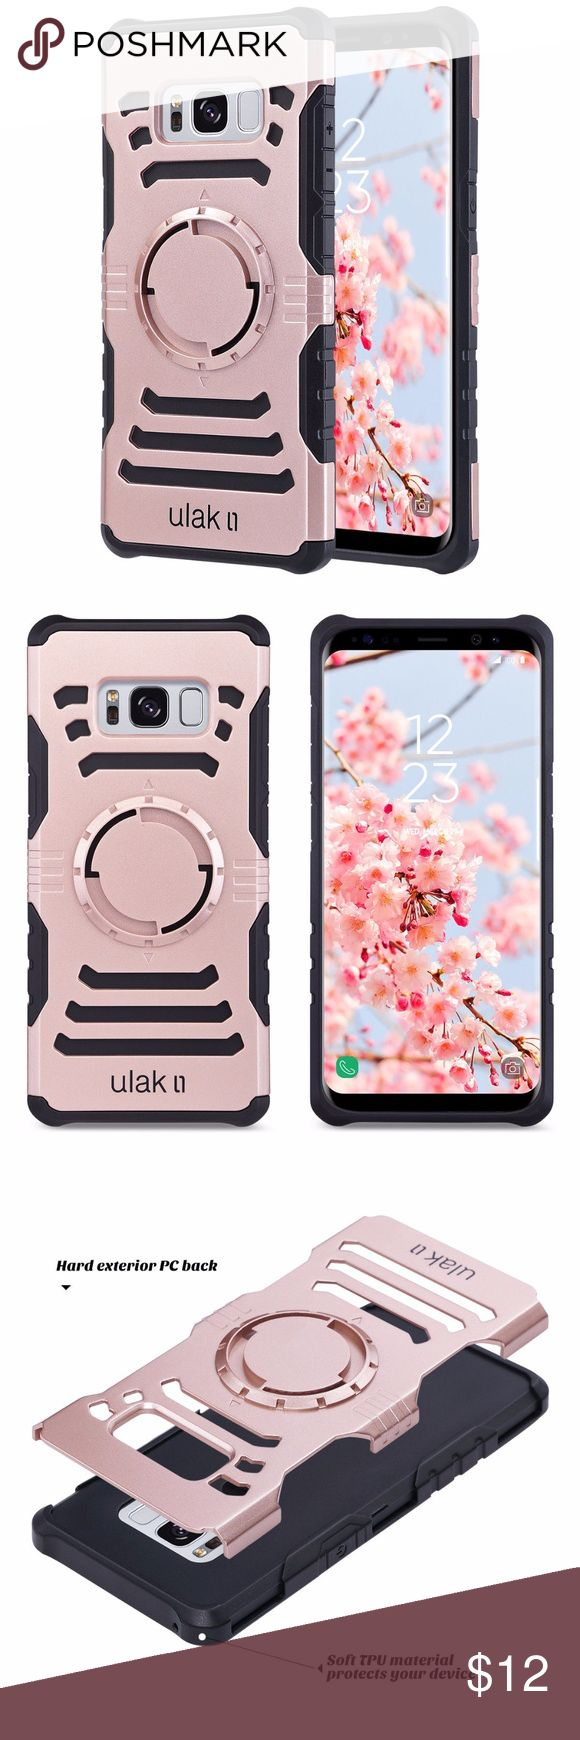 Samsung Galaxy S8 Shockproof magnetic cover rose For Samsung Galaxy S8 Slim Armor Magnetic Shockproof Rubber Cover Case Rose Gold ONLY Compatible with Samsung Galaxy S8(2017 Version); DO NOT FIT Samsung Galaxy S8+ or other versions.  Slim and lightweight protects your Samsung Galaxy S8 Case against scratches, fingerprint and dirt.  Made with hard plastic outside and soft shock absorbent TPU back cover inside.  Back Magnetic cover supports car holder(not inclueded) ULAK Accessories Phone…